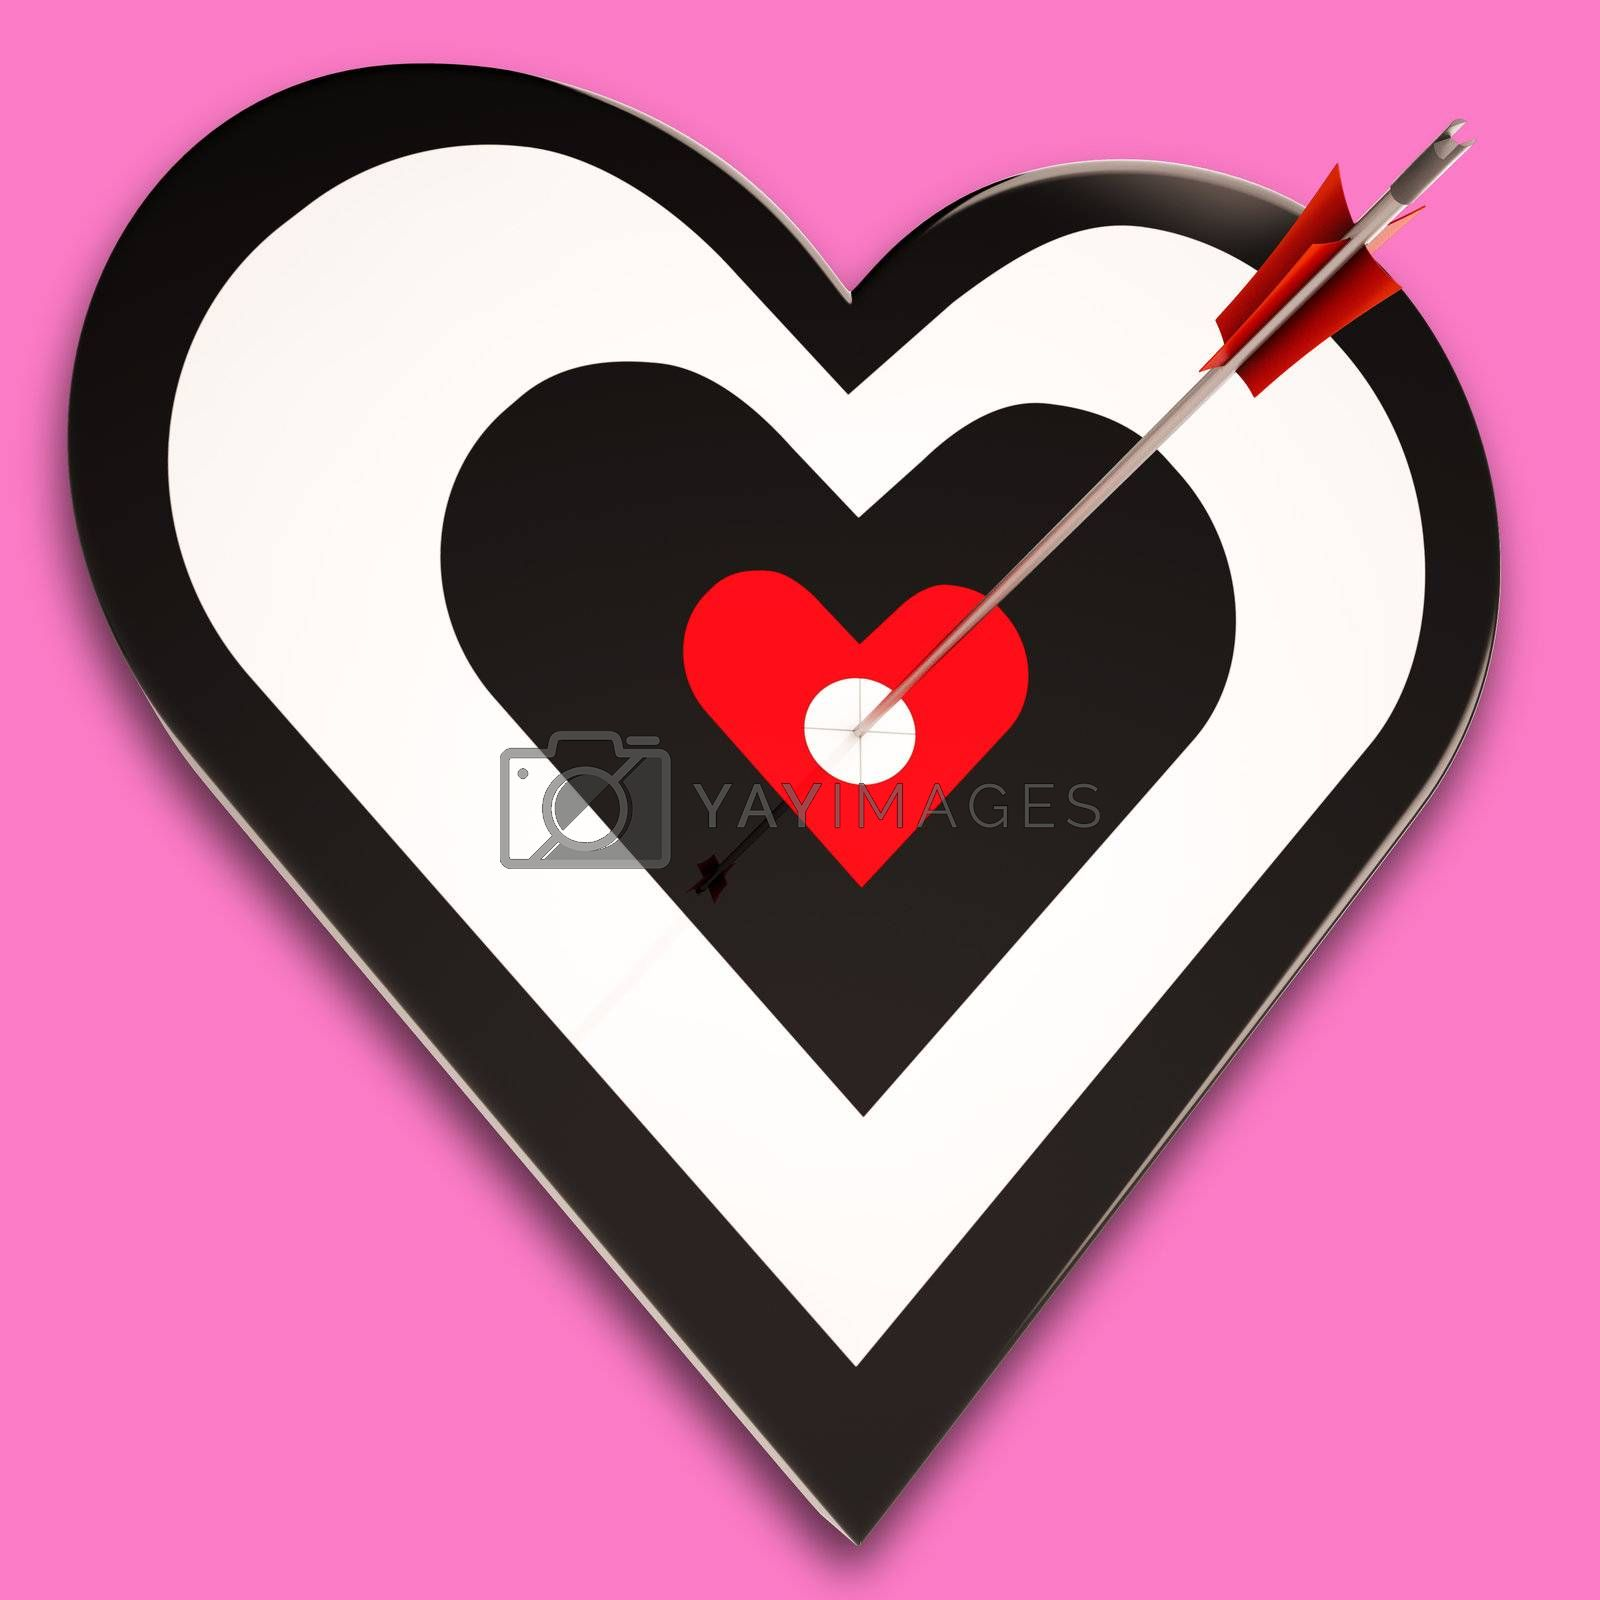 Heart Target Showing Passion, Romance And Emotion